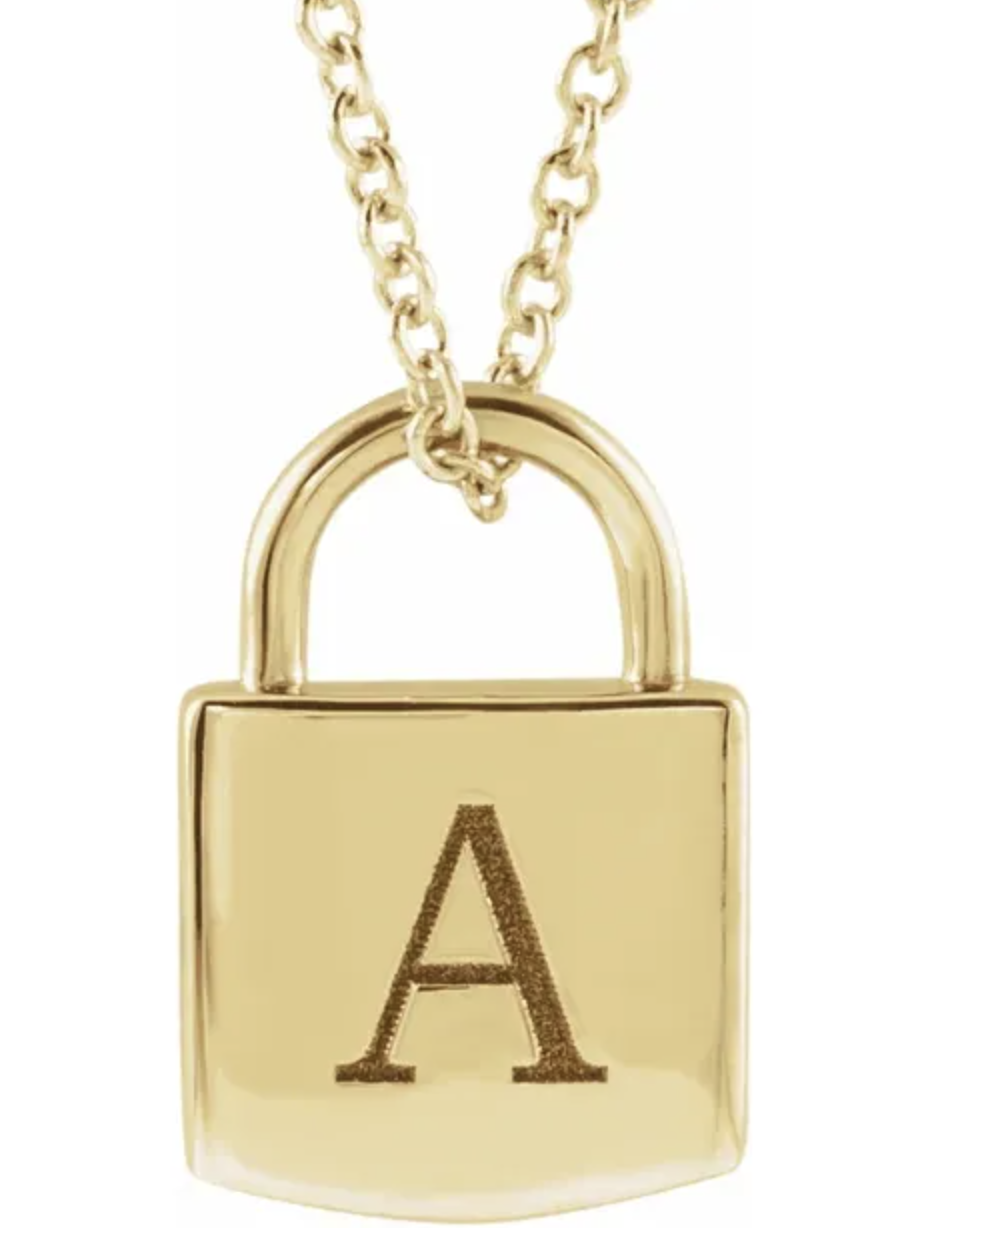 Stuller 14kt Gold Engravable Lock Necklace